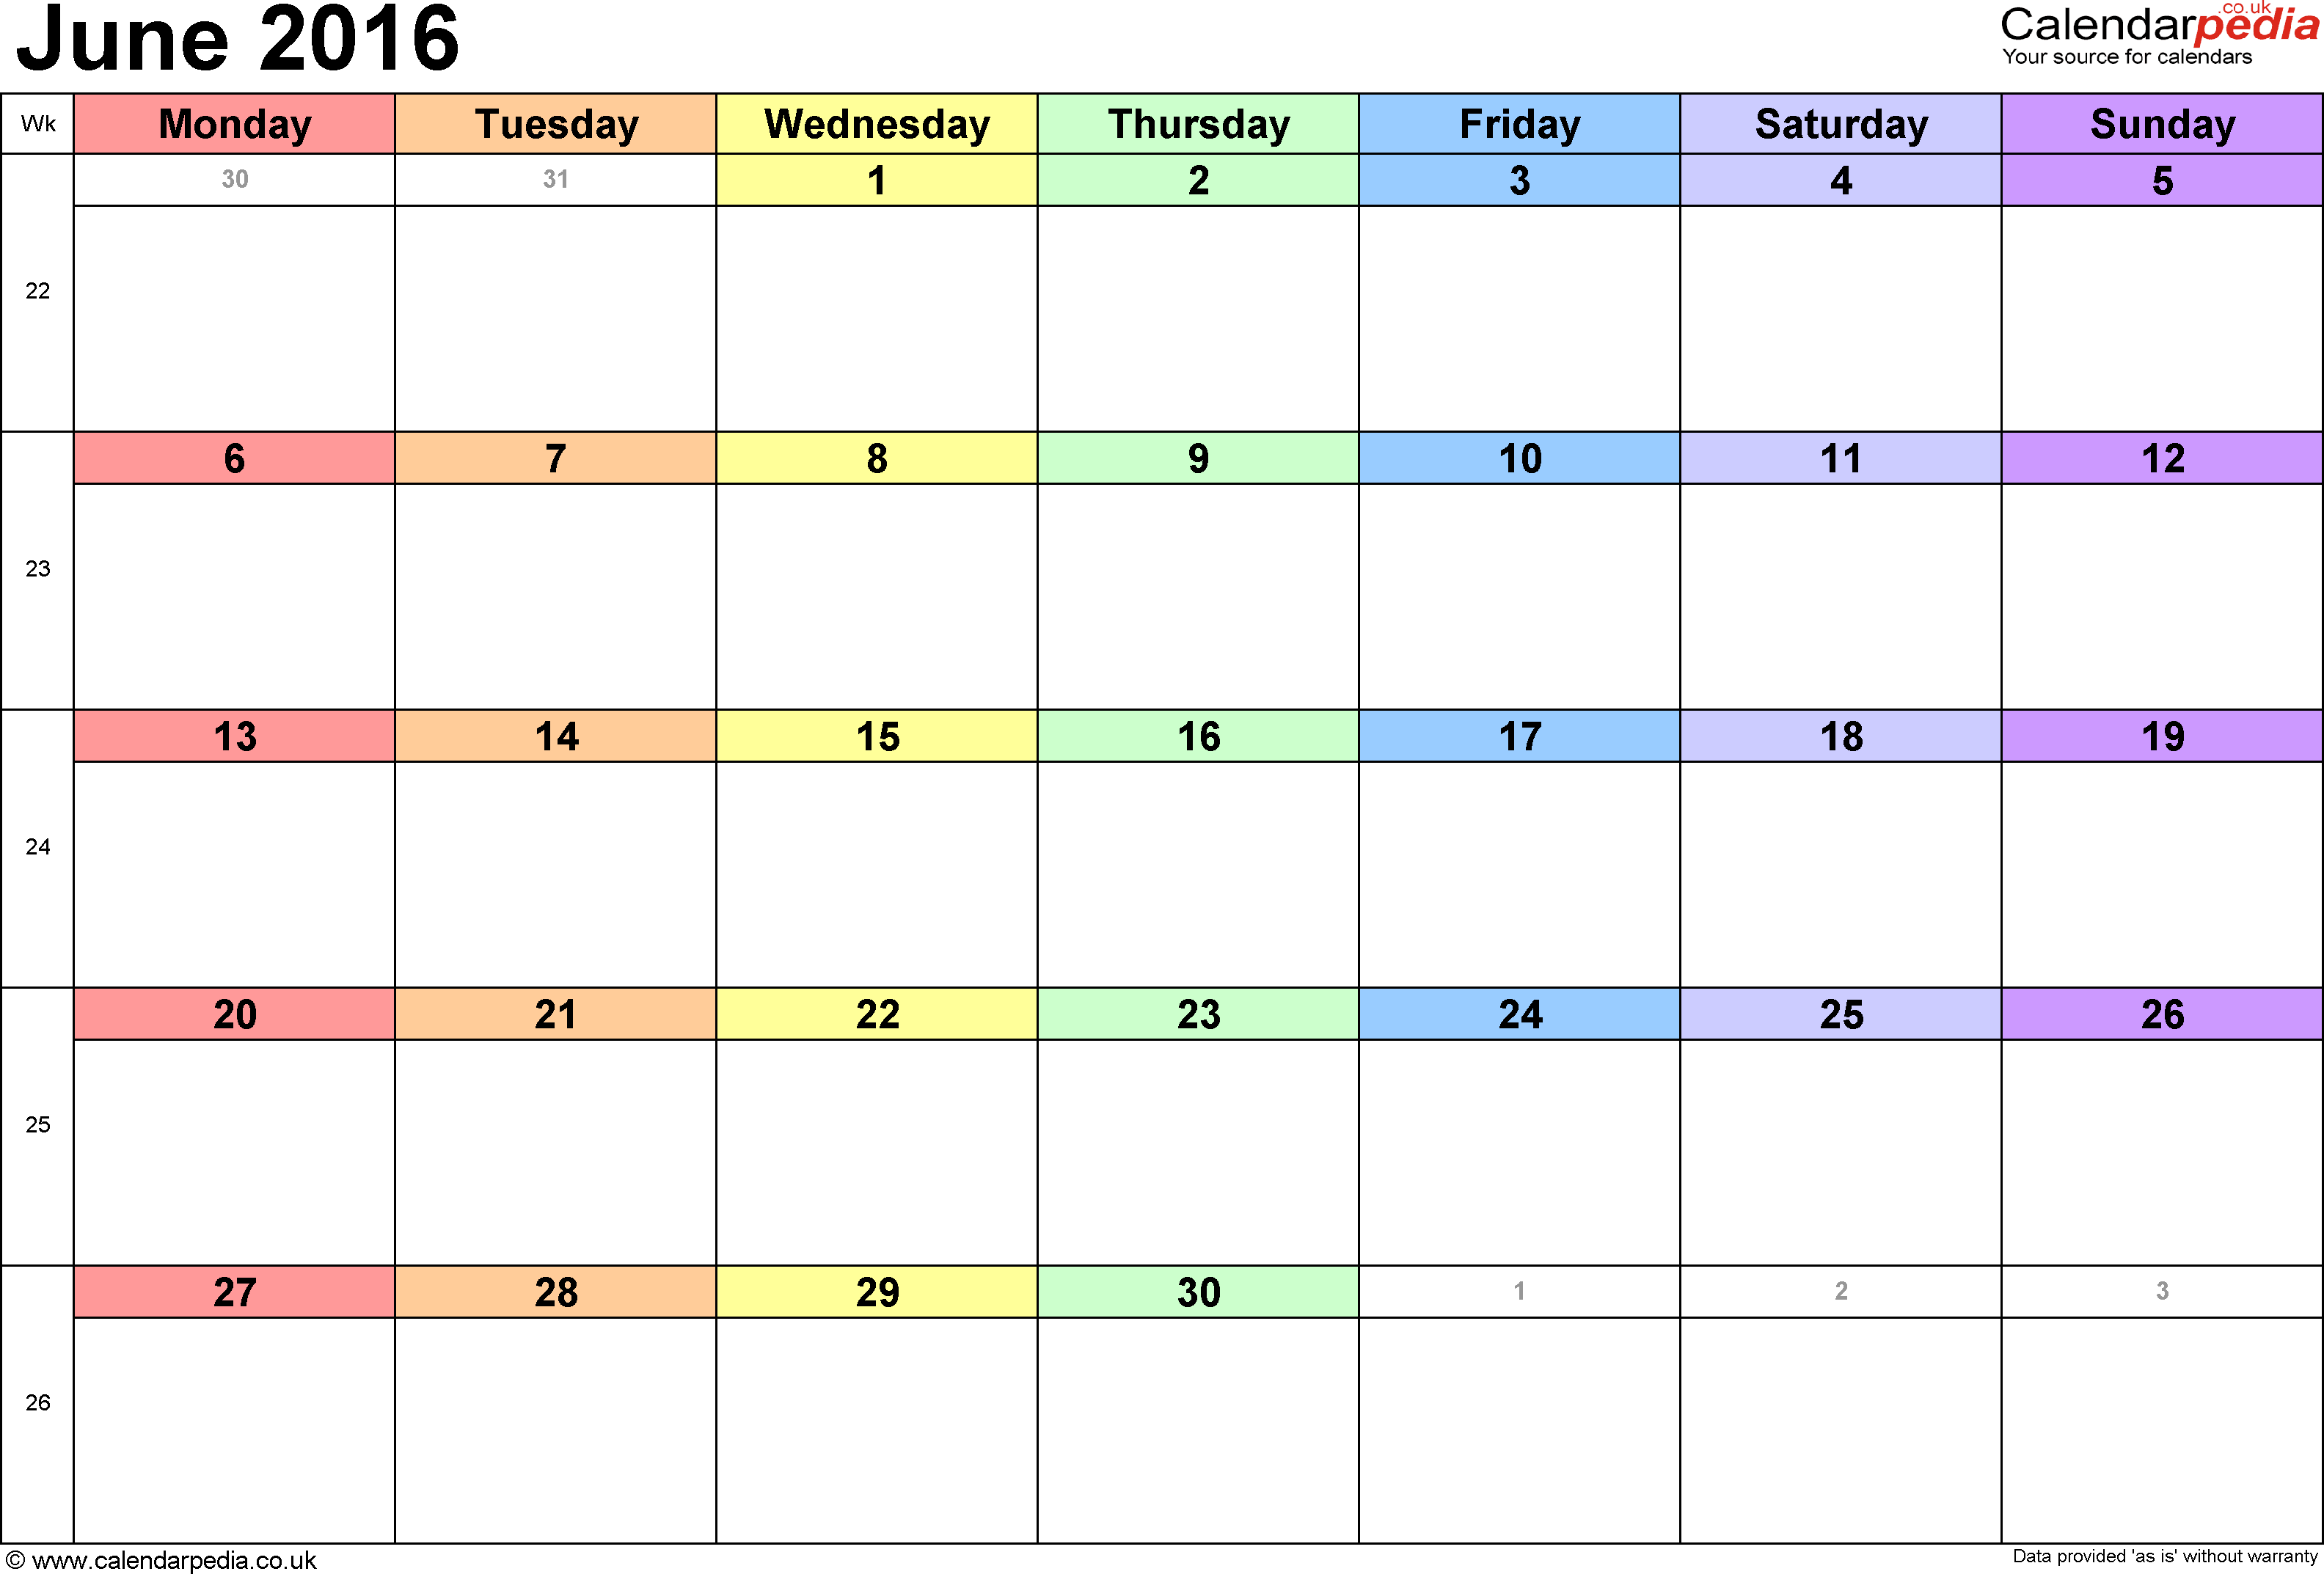 Calendar June 2016, landscape orientation, 1 page, with UK bank holidays and week numbers